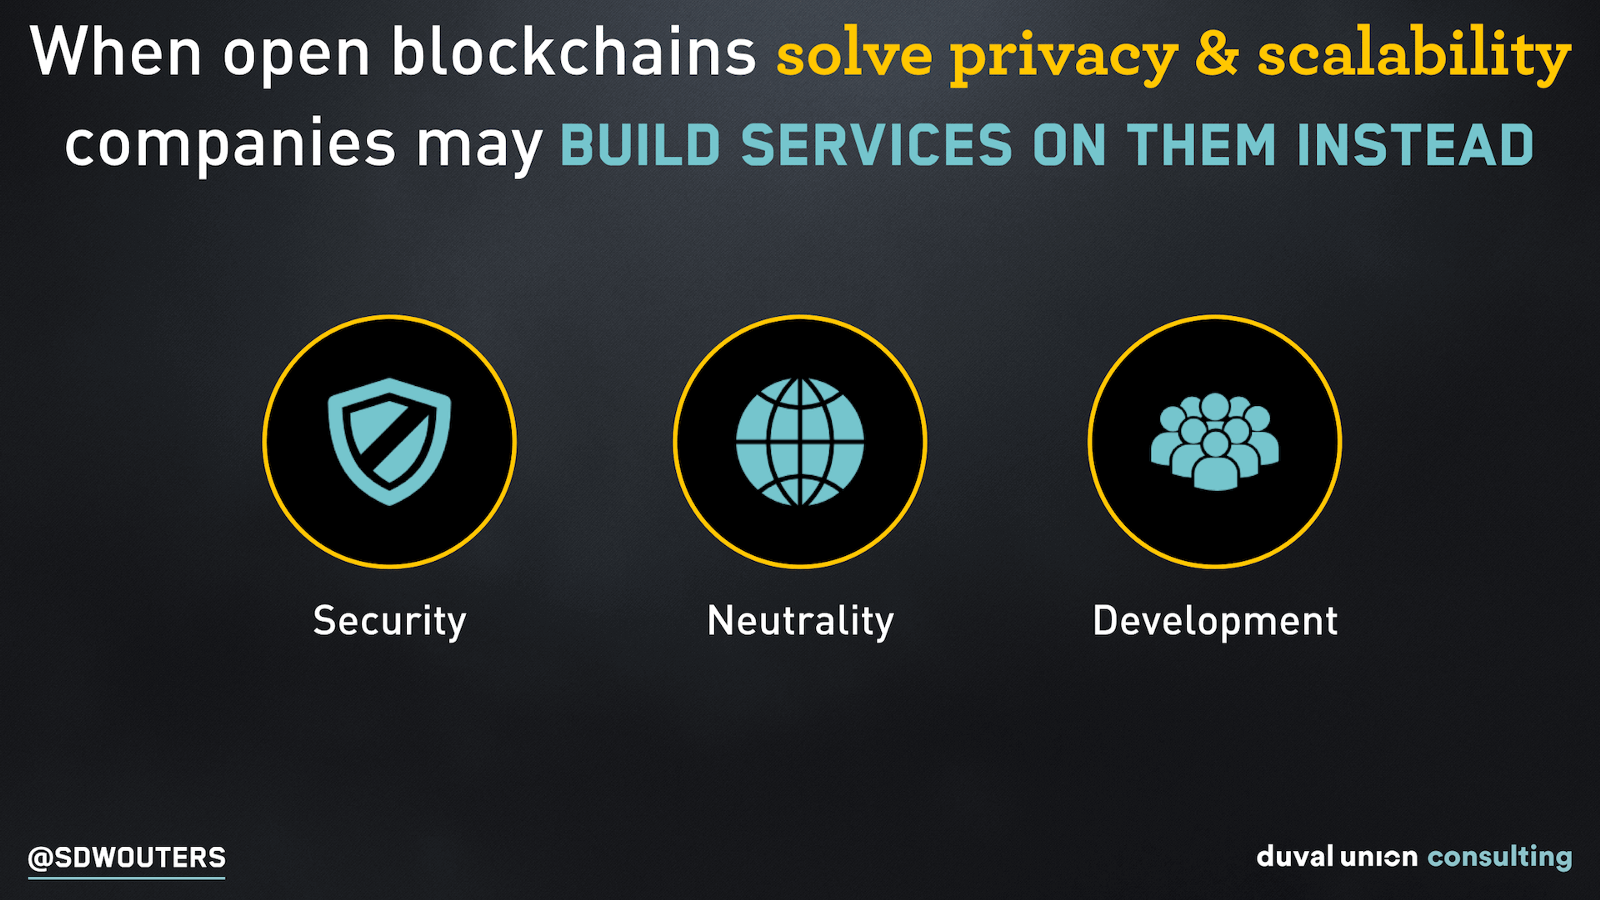 Open Blockchain advantages